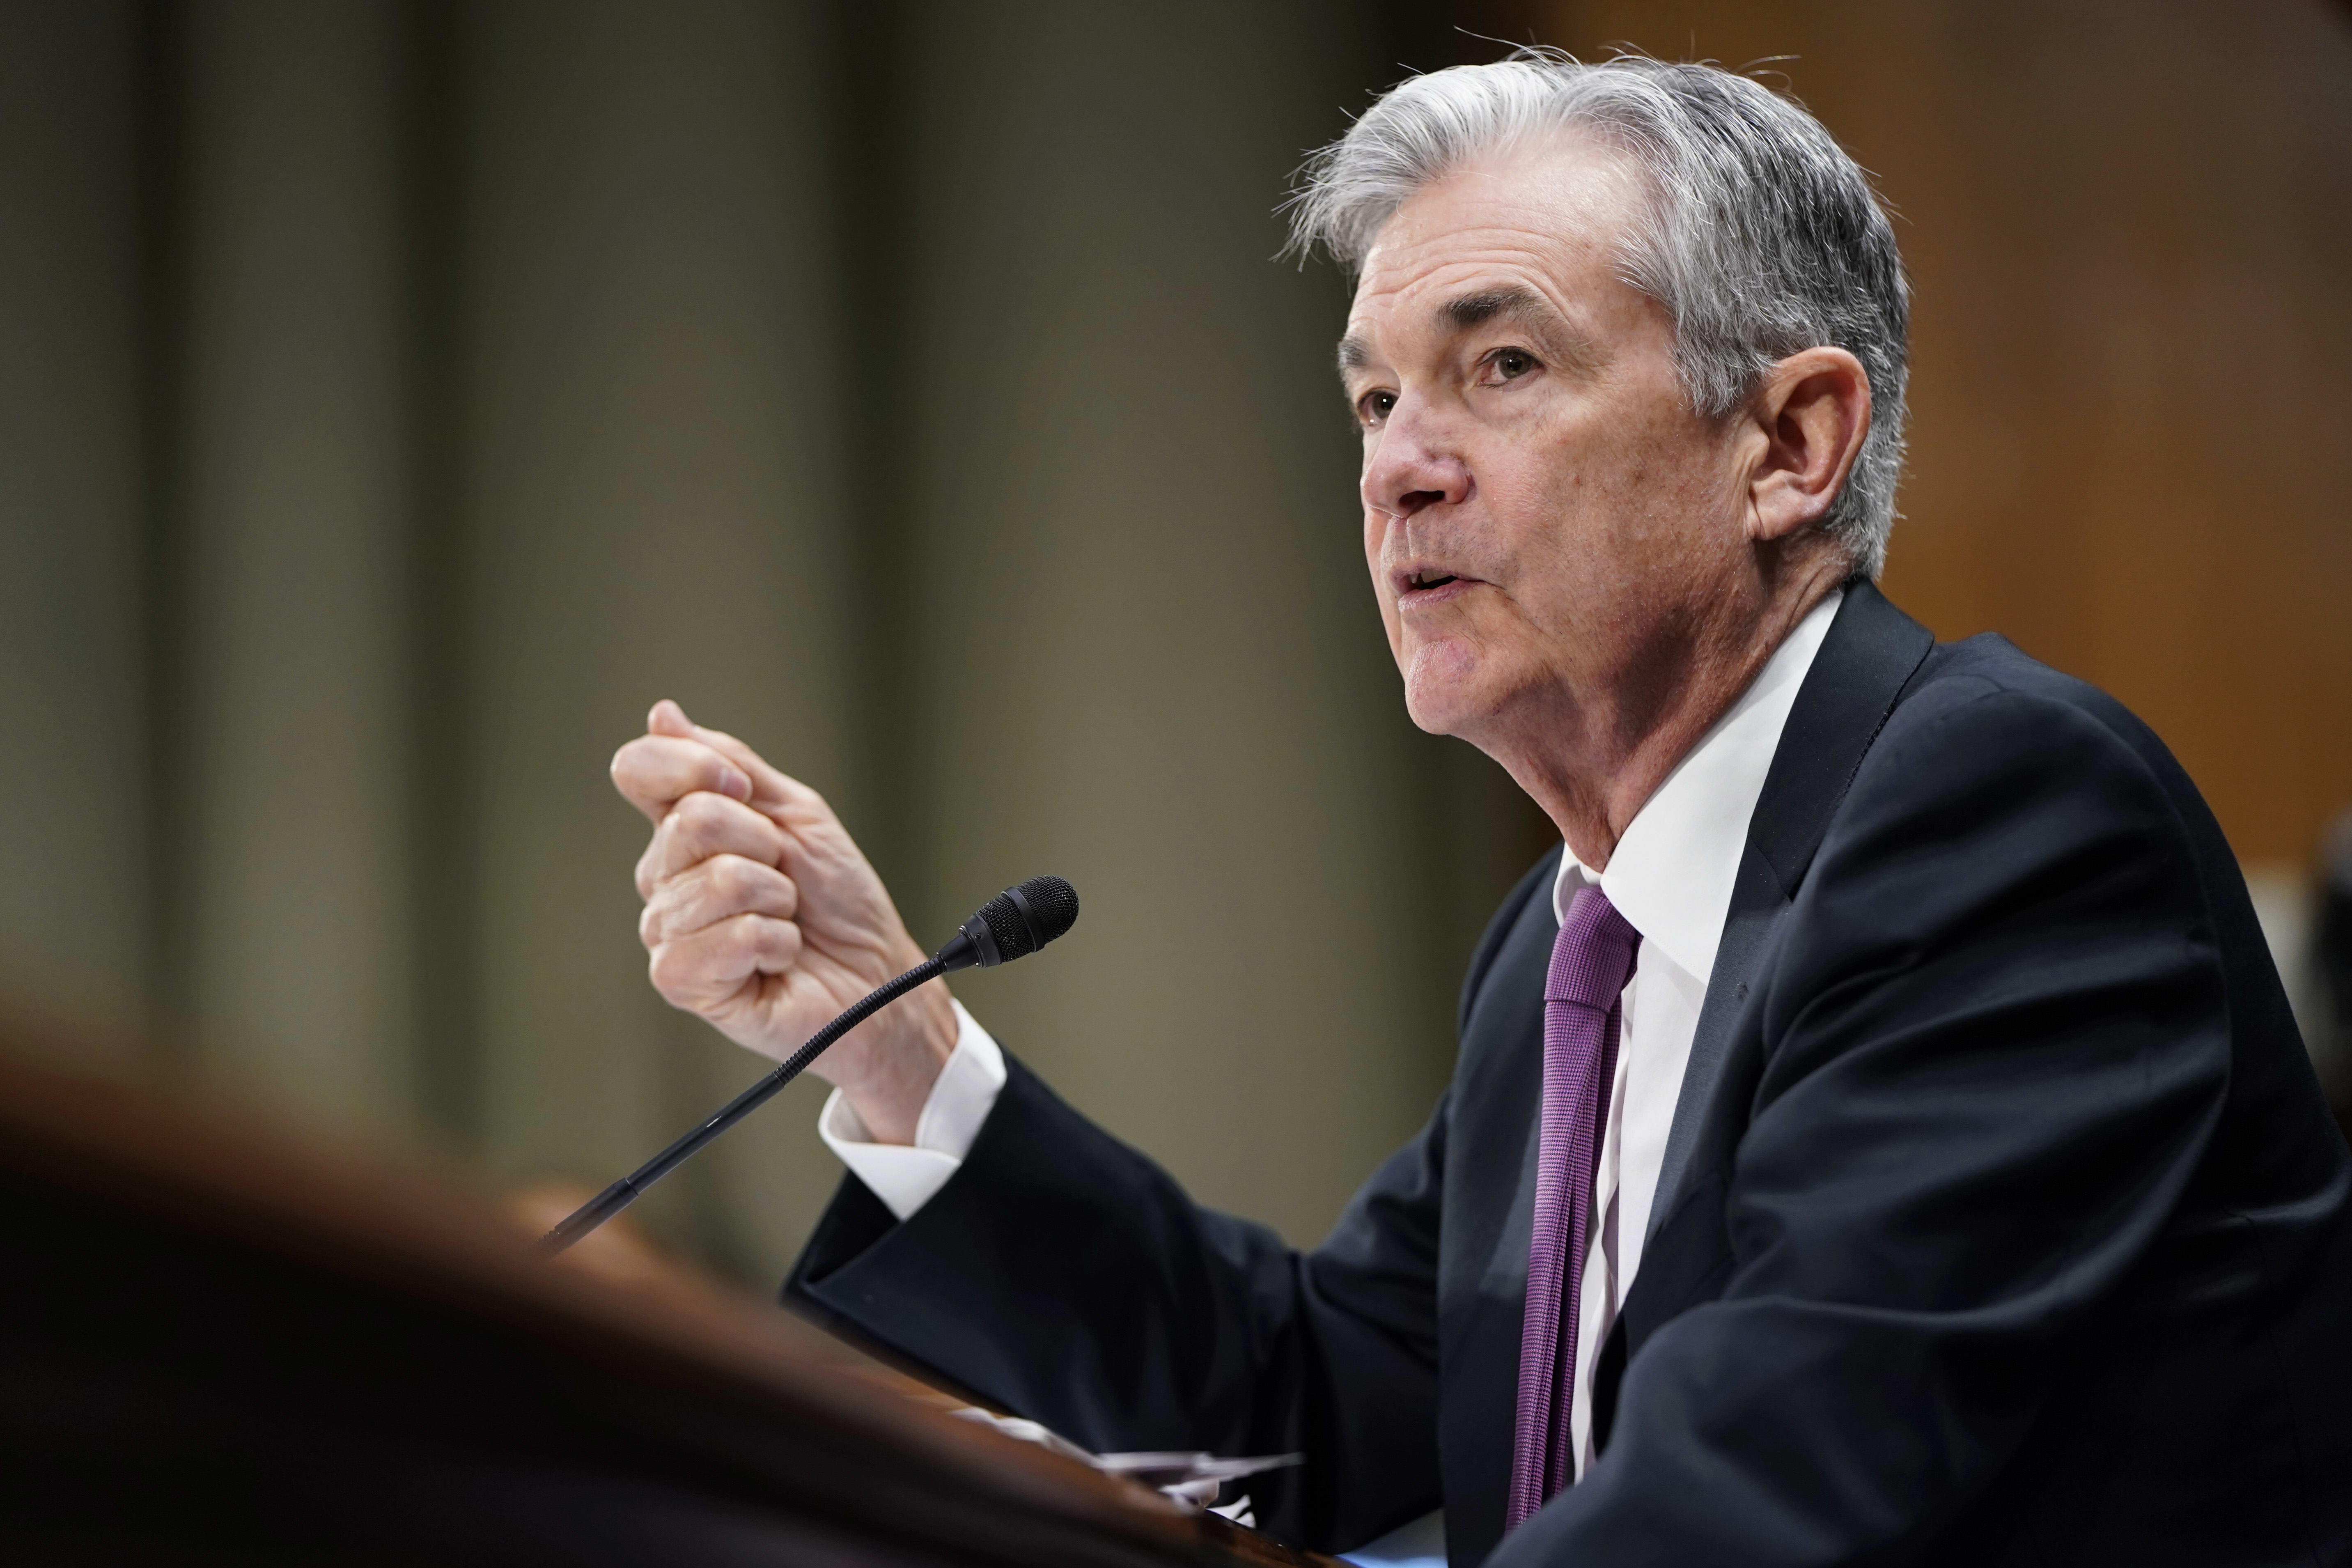 Powell says the Fed may have to resume balance sheet growth